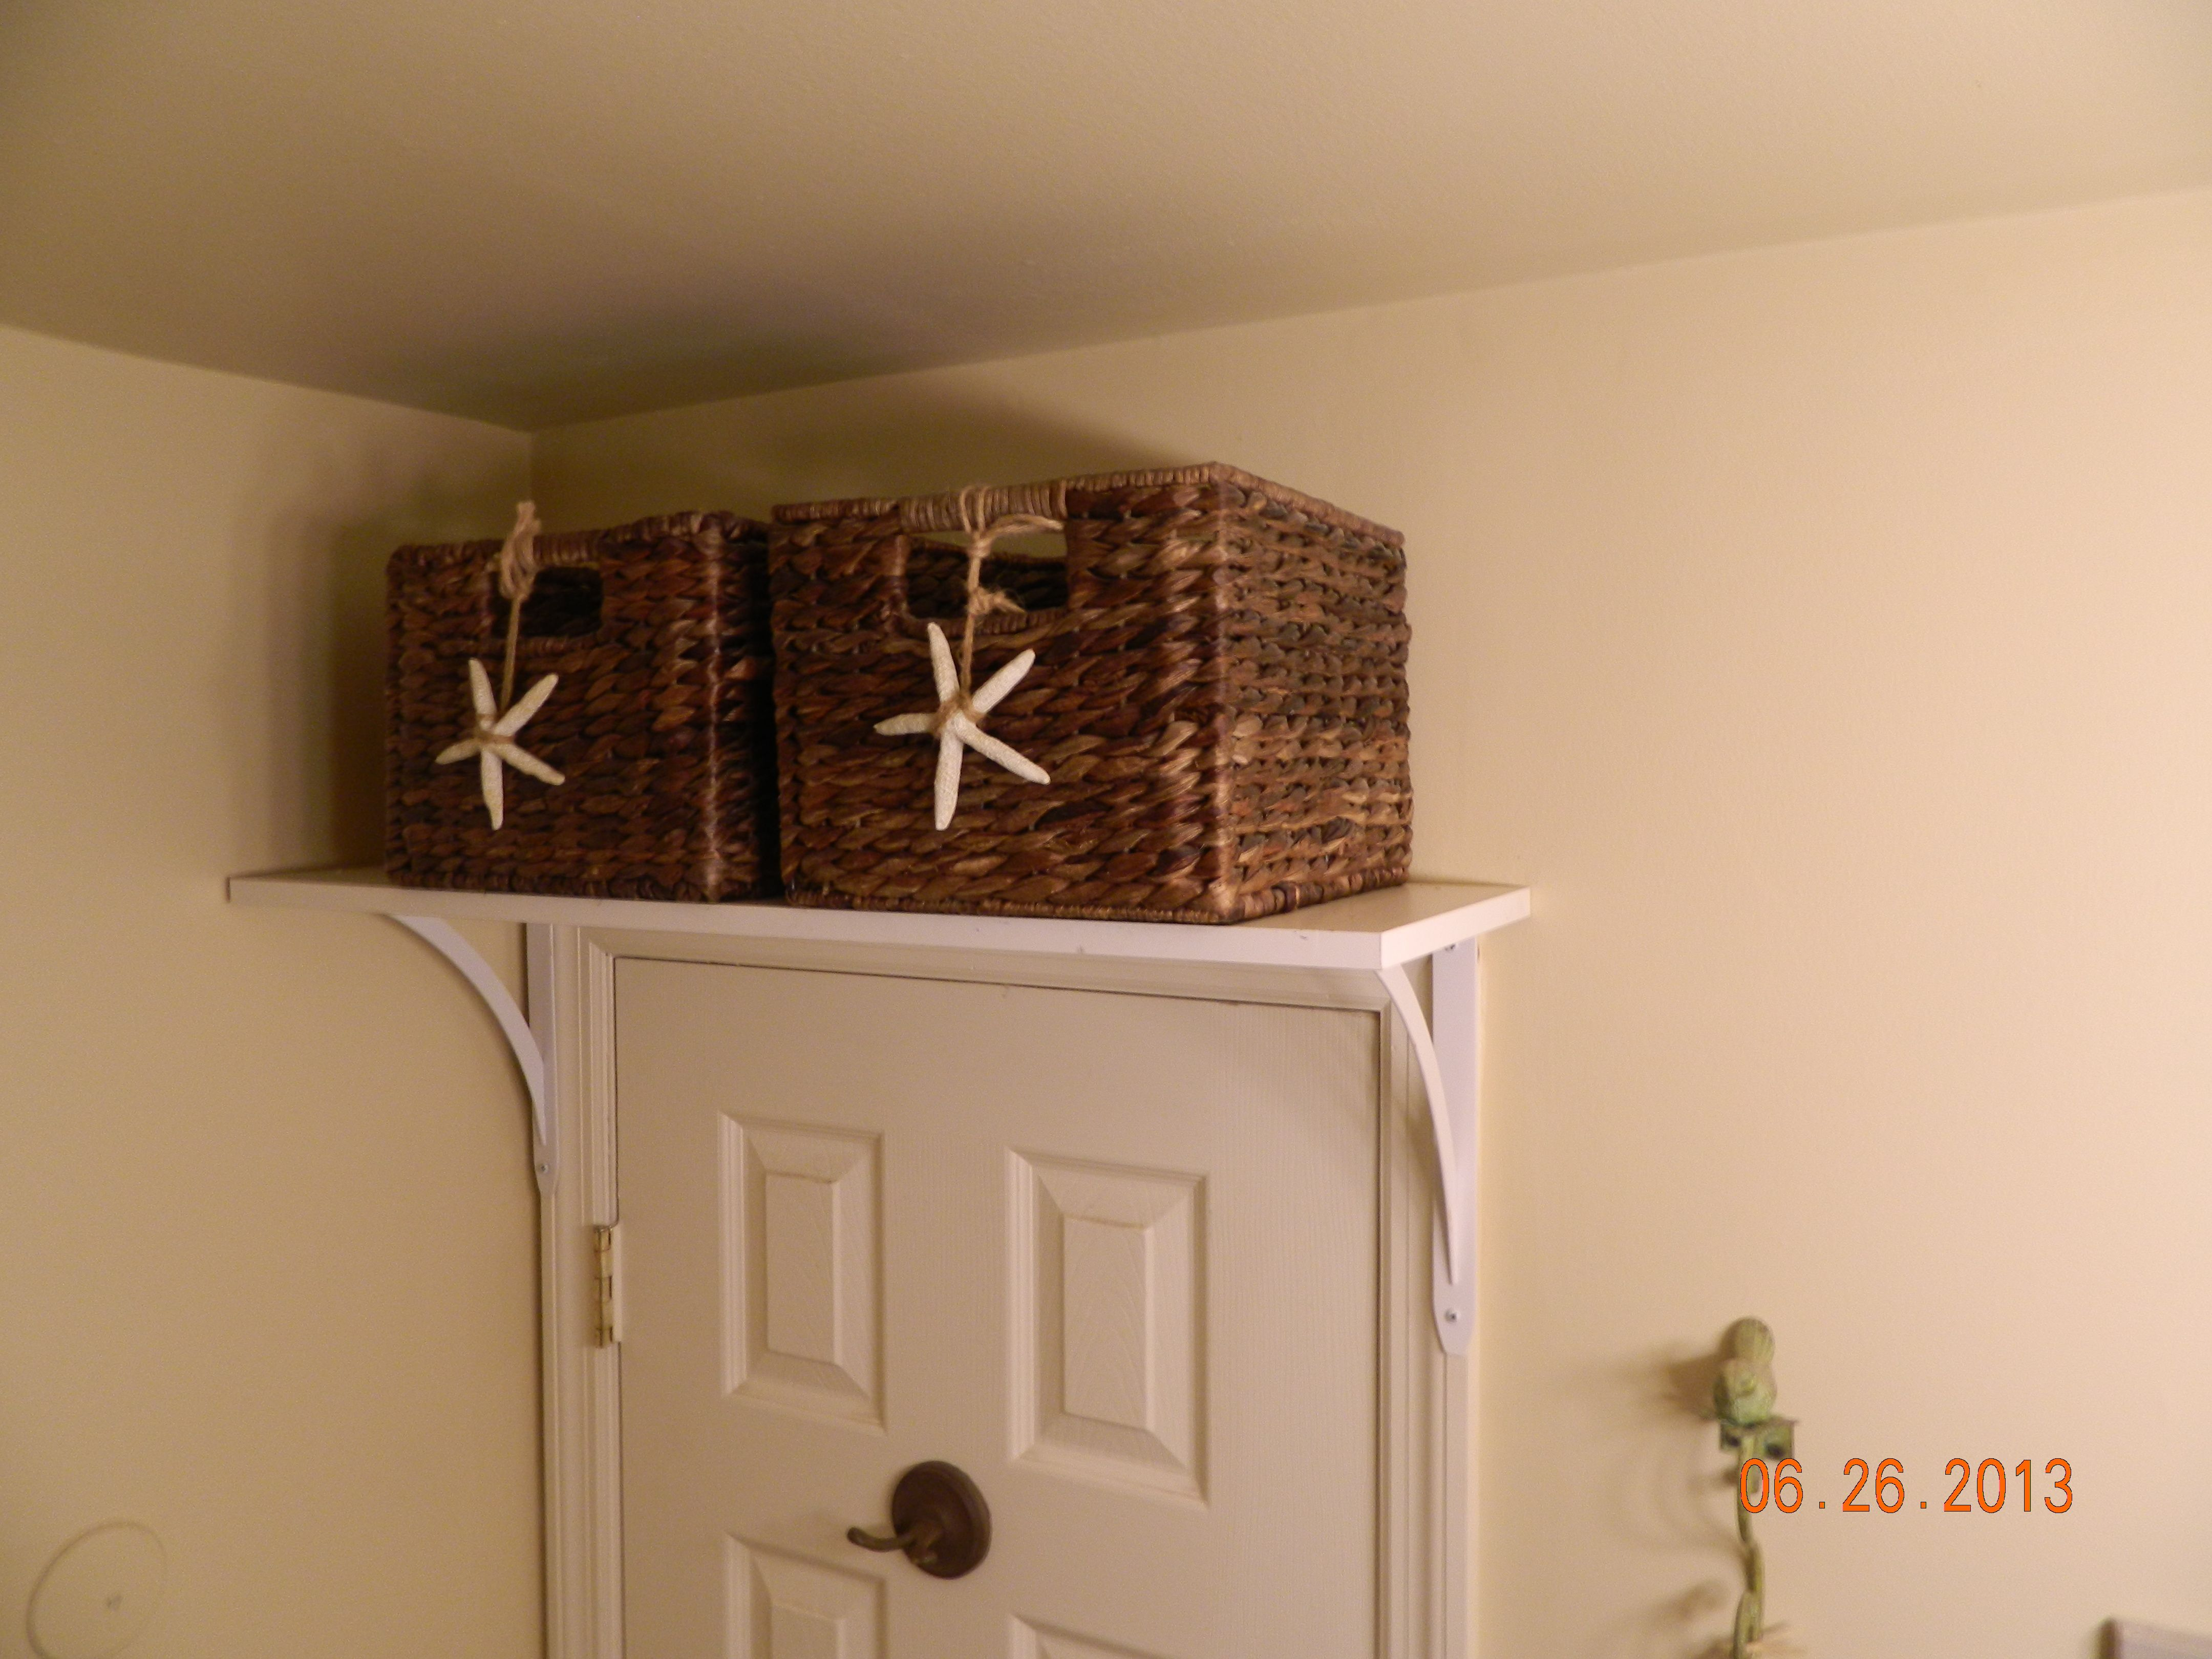 Home Depot Shelf And Brackets Attached Over Bathroom Door With